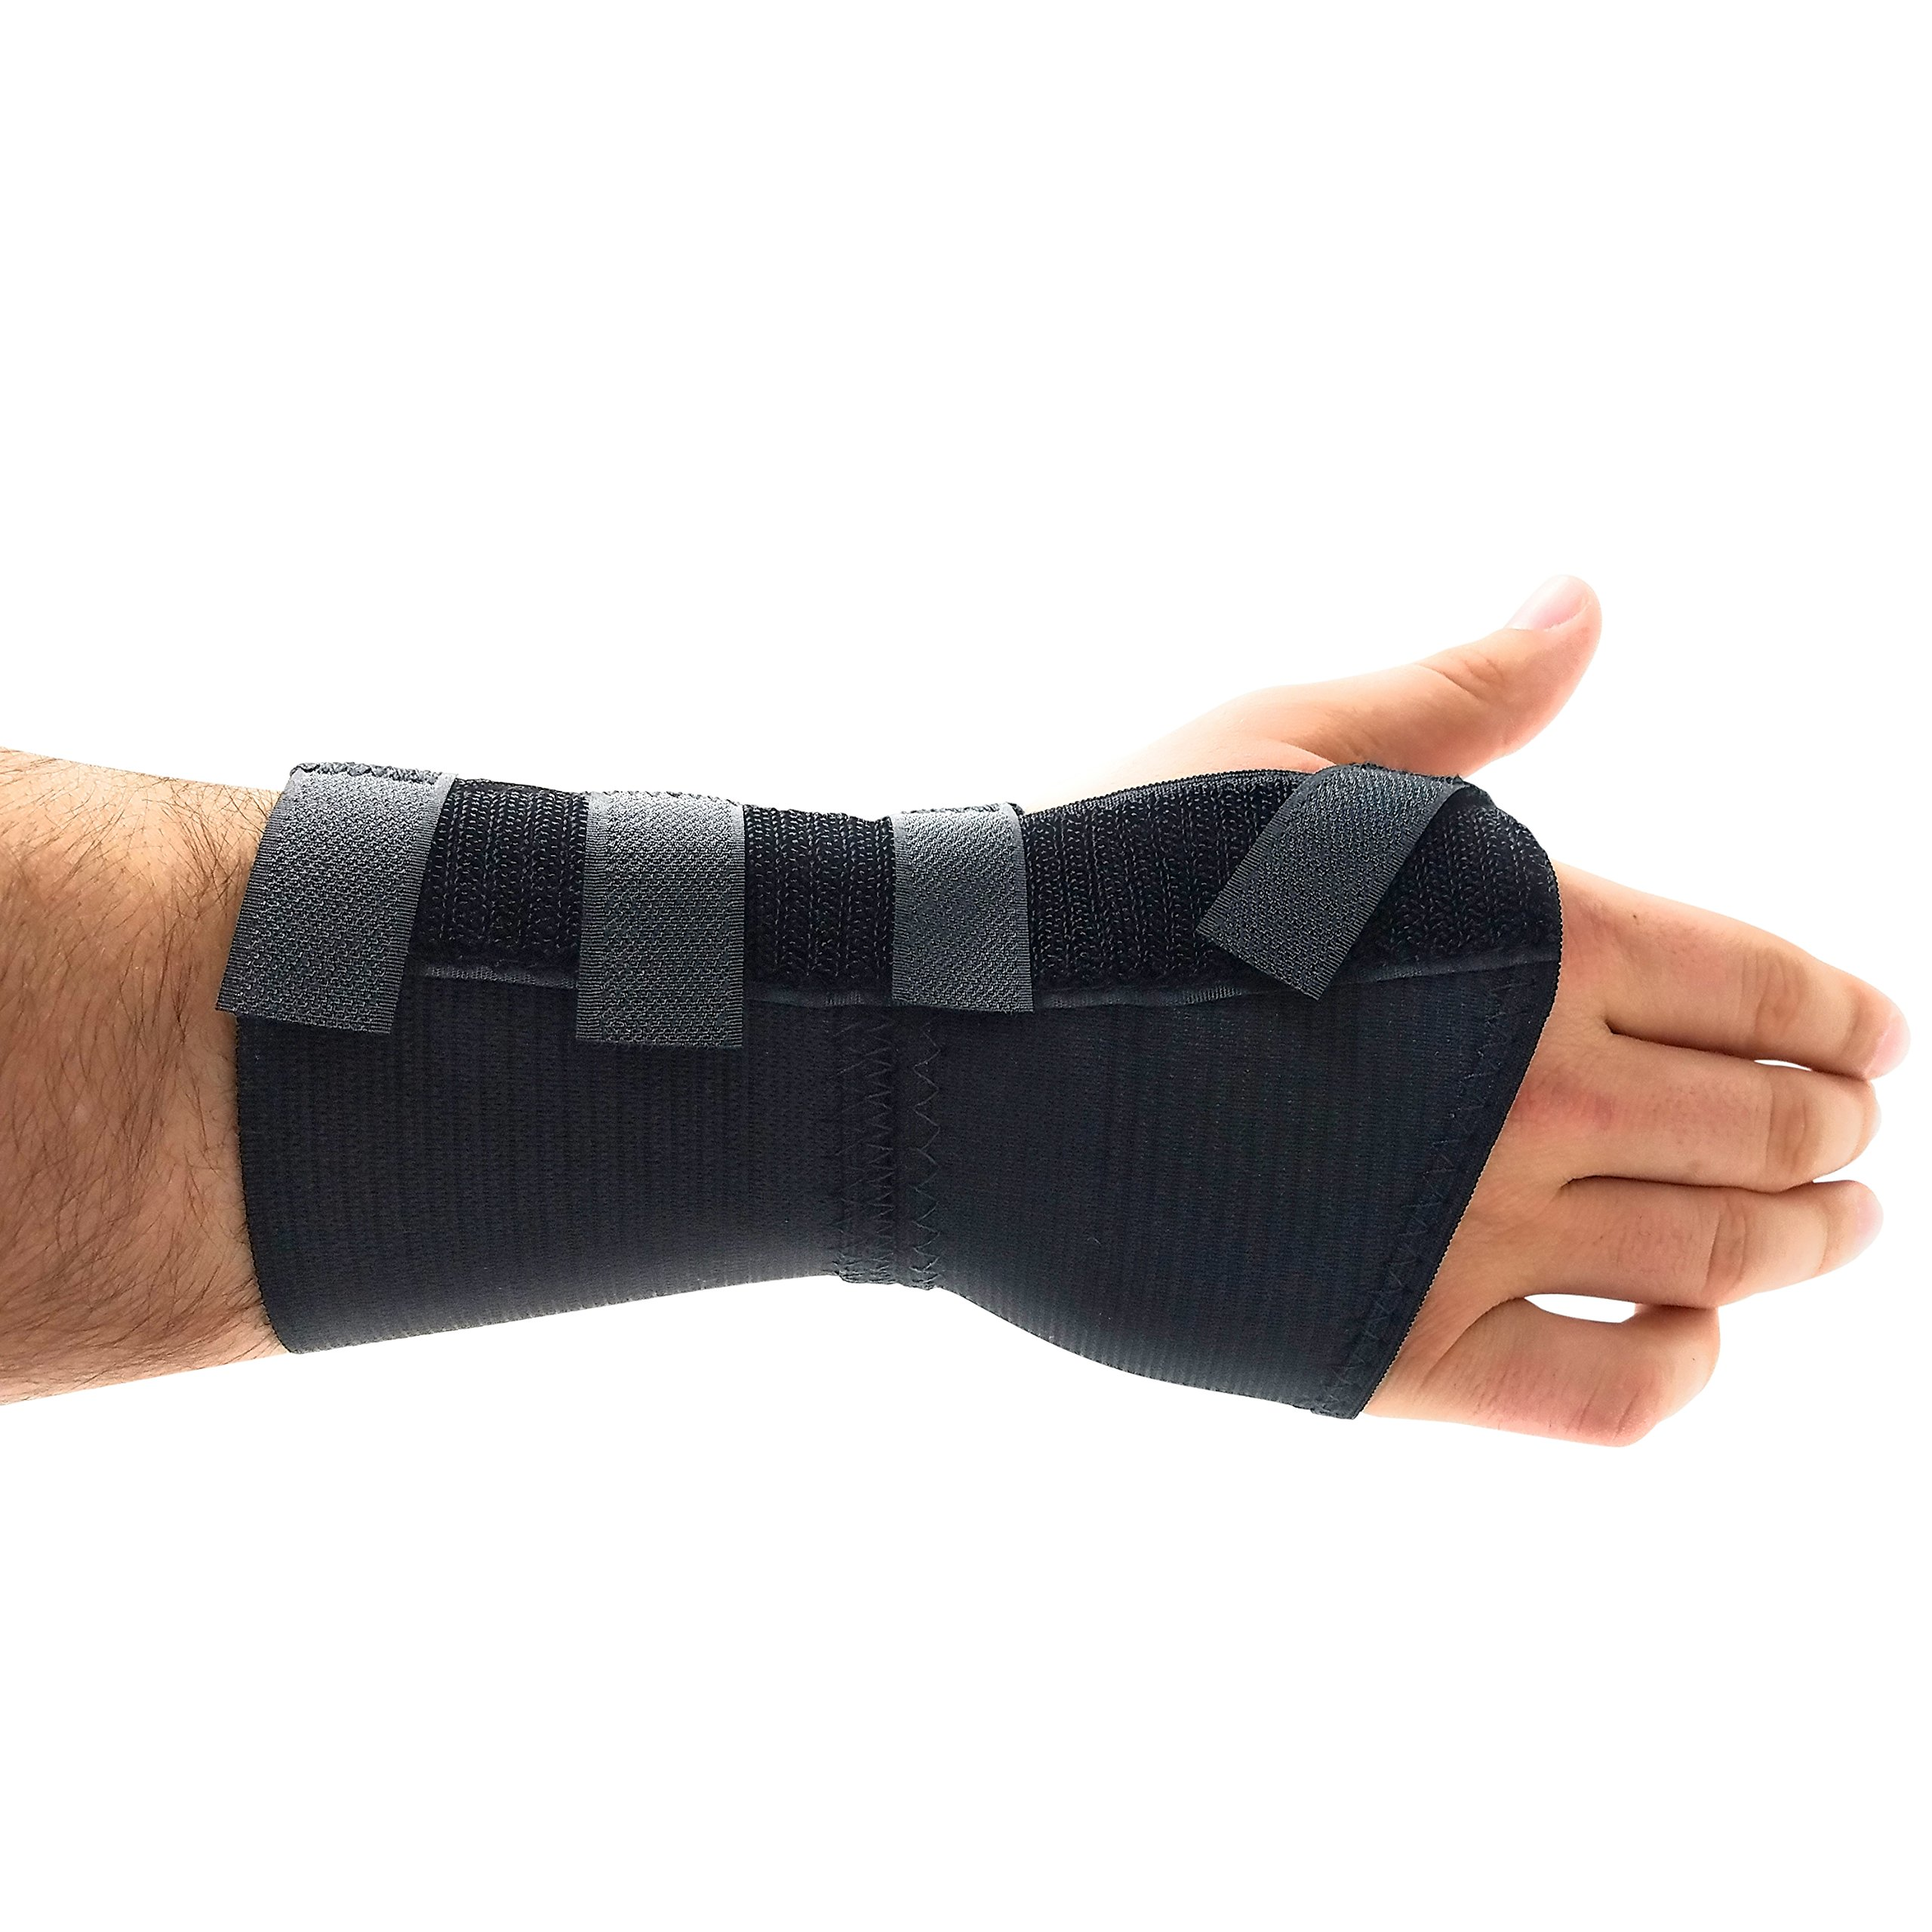 Premium Custom Wrist Brace Support - with Removable Metal Splint/Stays - Right - Small